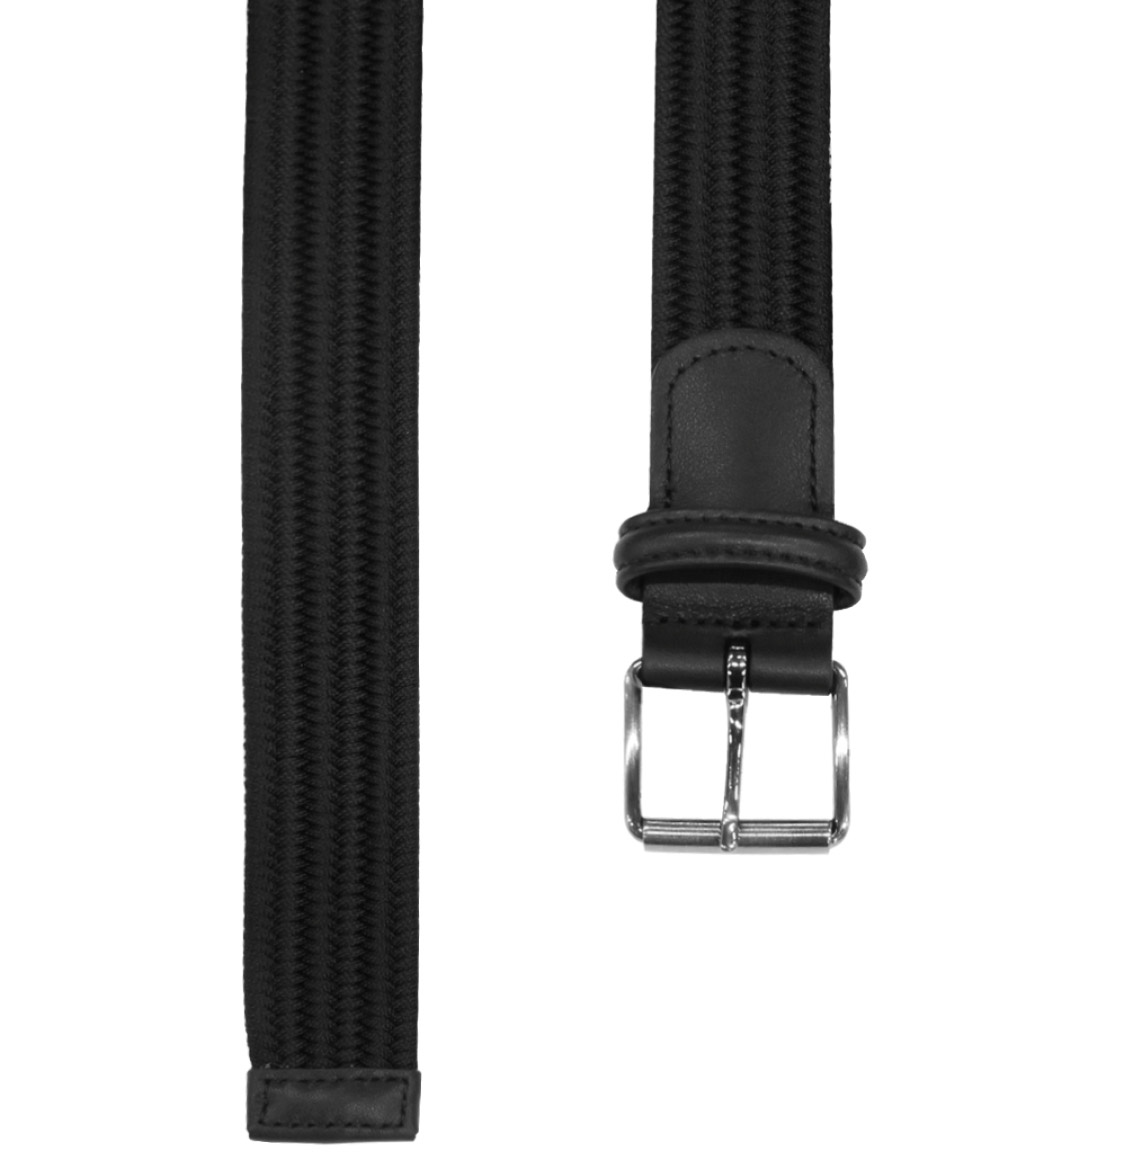 Anderson's Leather-Trimmed Woven Slim Belt Black